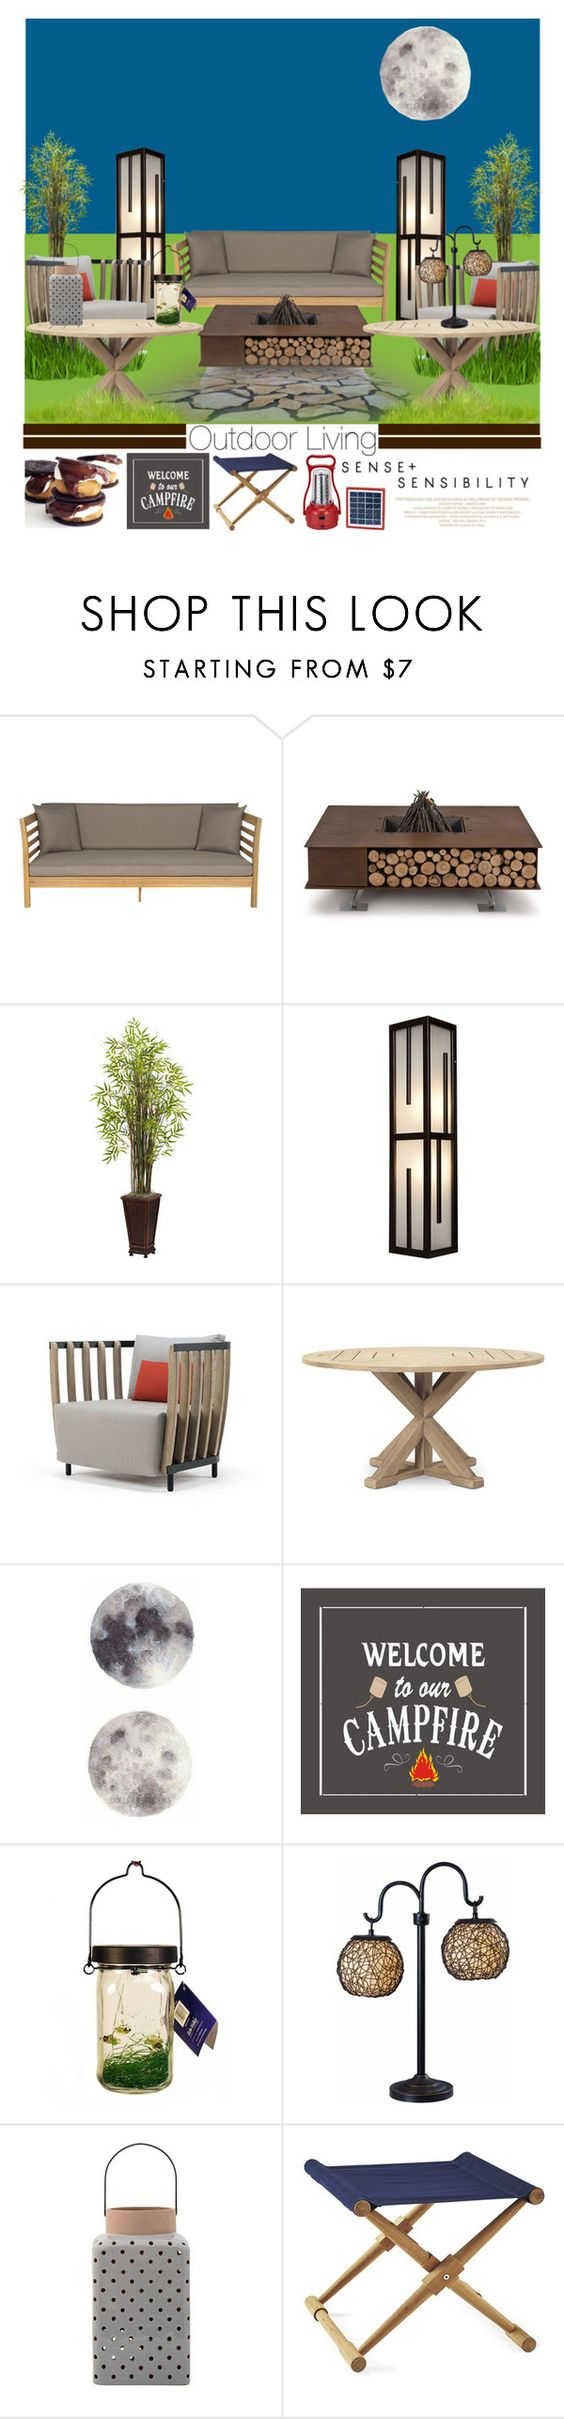 """""""Summer Outdoor Dining (3)"""" by emhenry ❤ liked on Polyvore featuring interior, interiors, interior design, home, home decor, interior decorating, Safavieh, AK47, Nearly Natural and Access Lighting"""